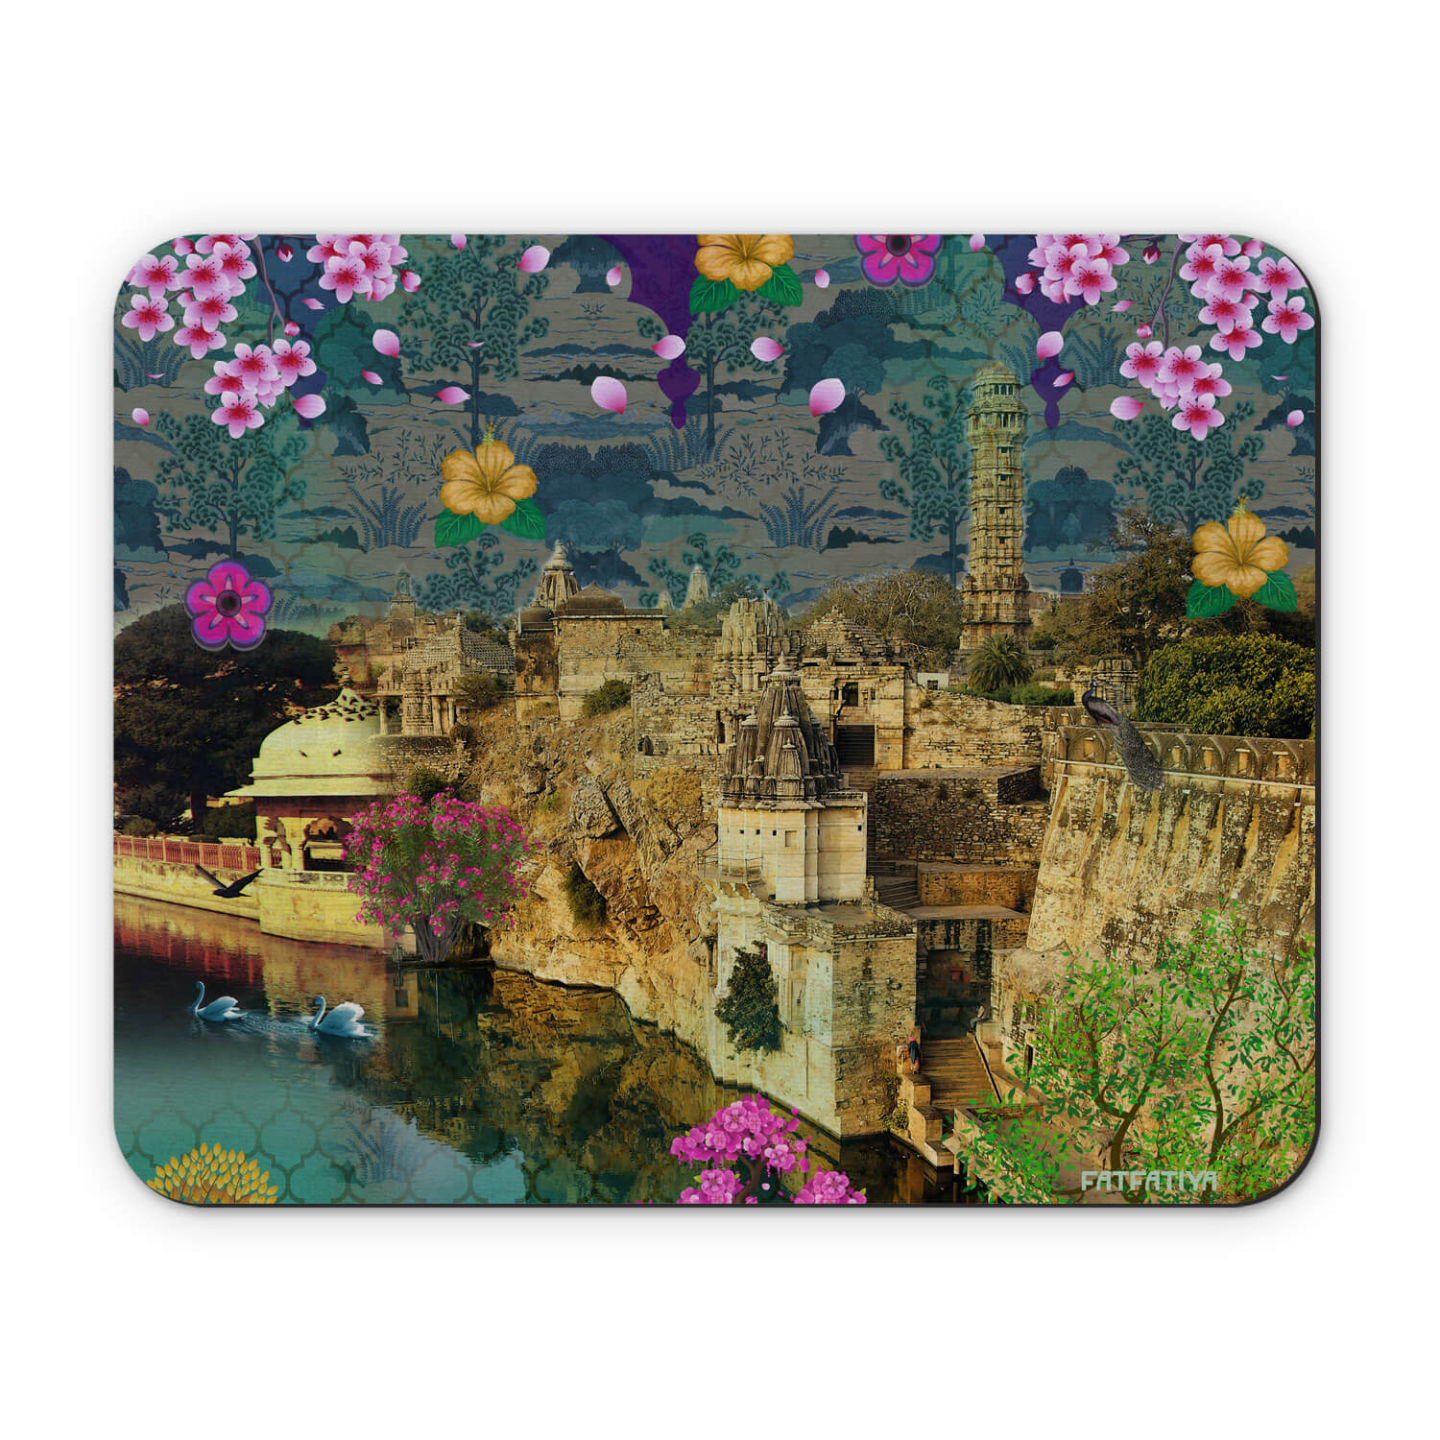 Heritage Fort Mouse Pad